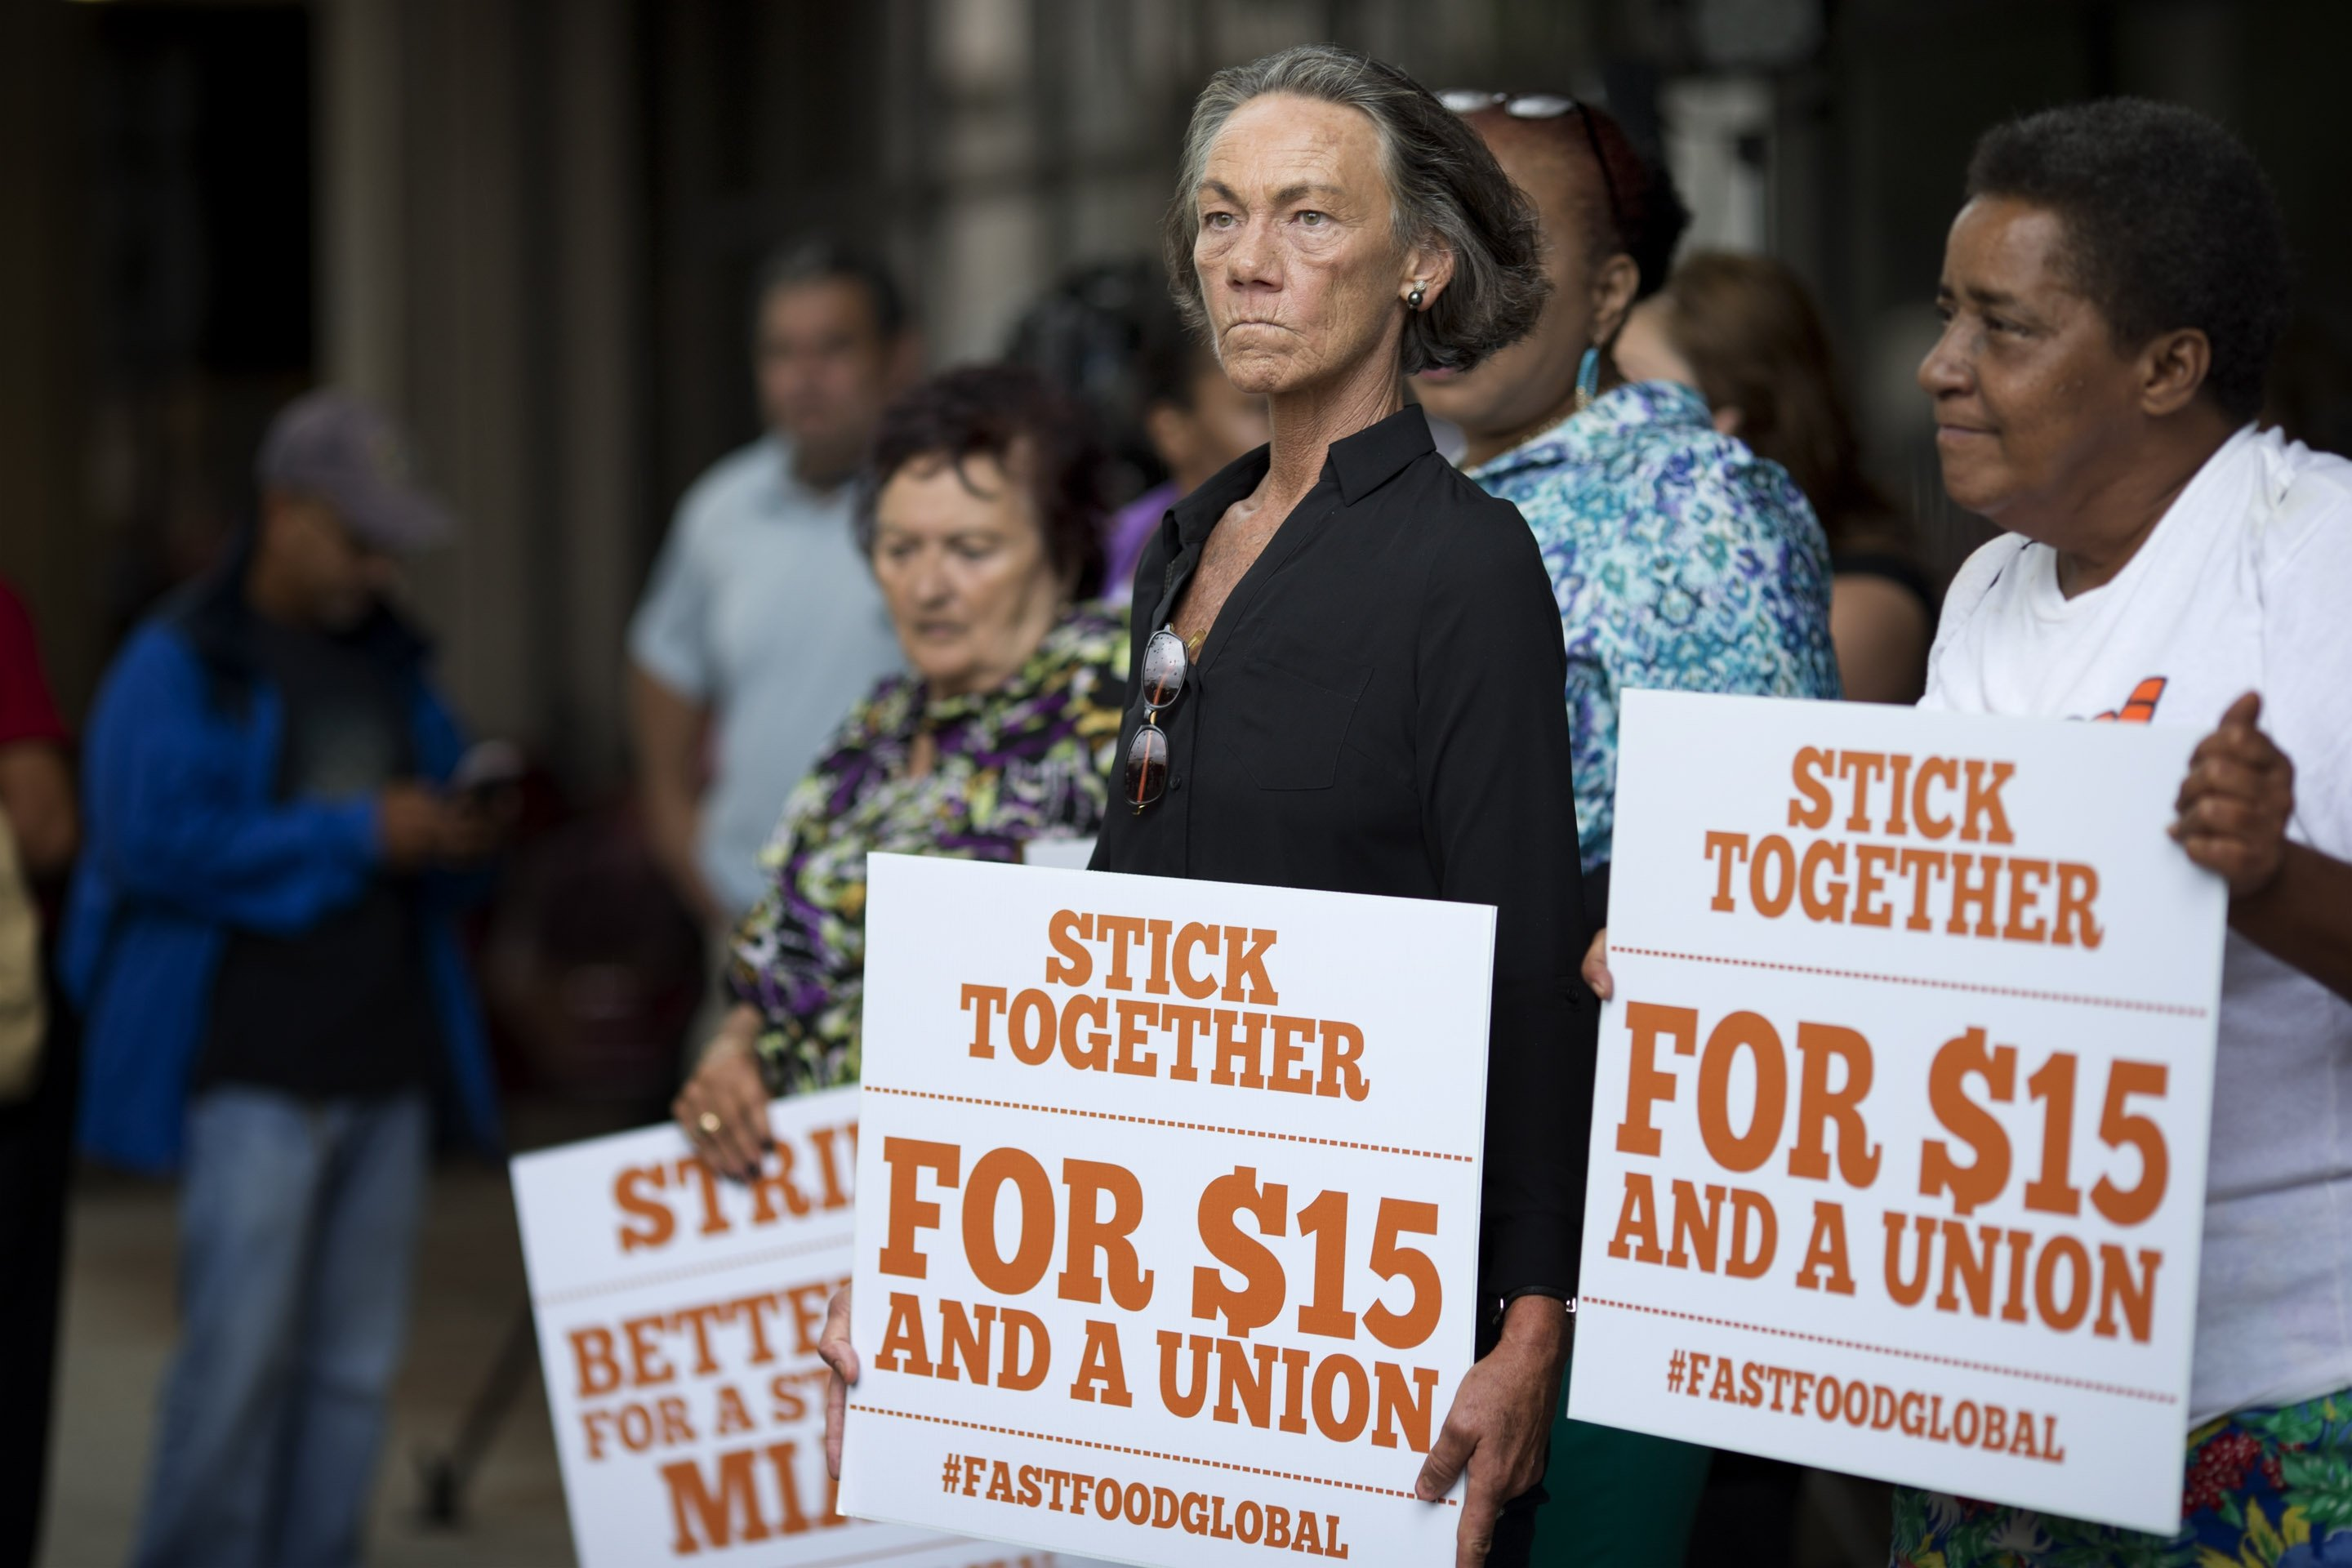 <b>Miami:</b> Deborah Dion, from the Voices for Working Families organization, stands in protest near a McDonald&#039;s on May 15, 2014.